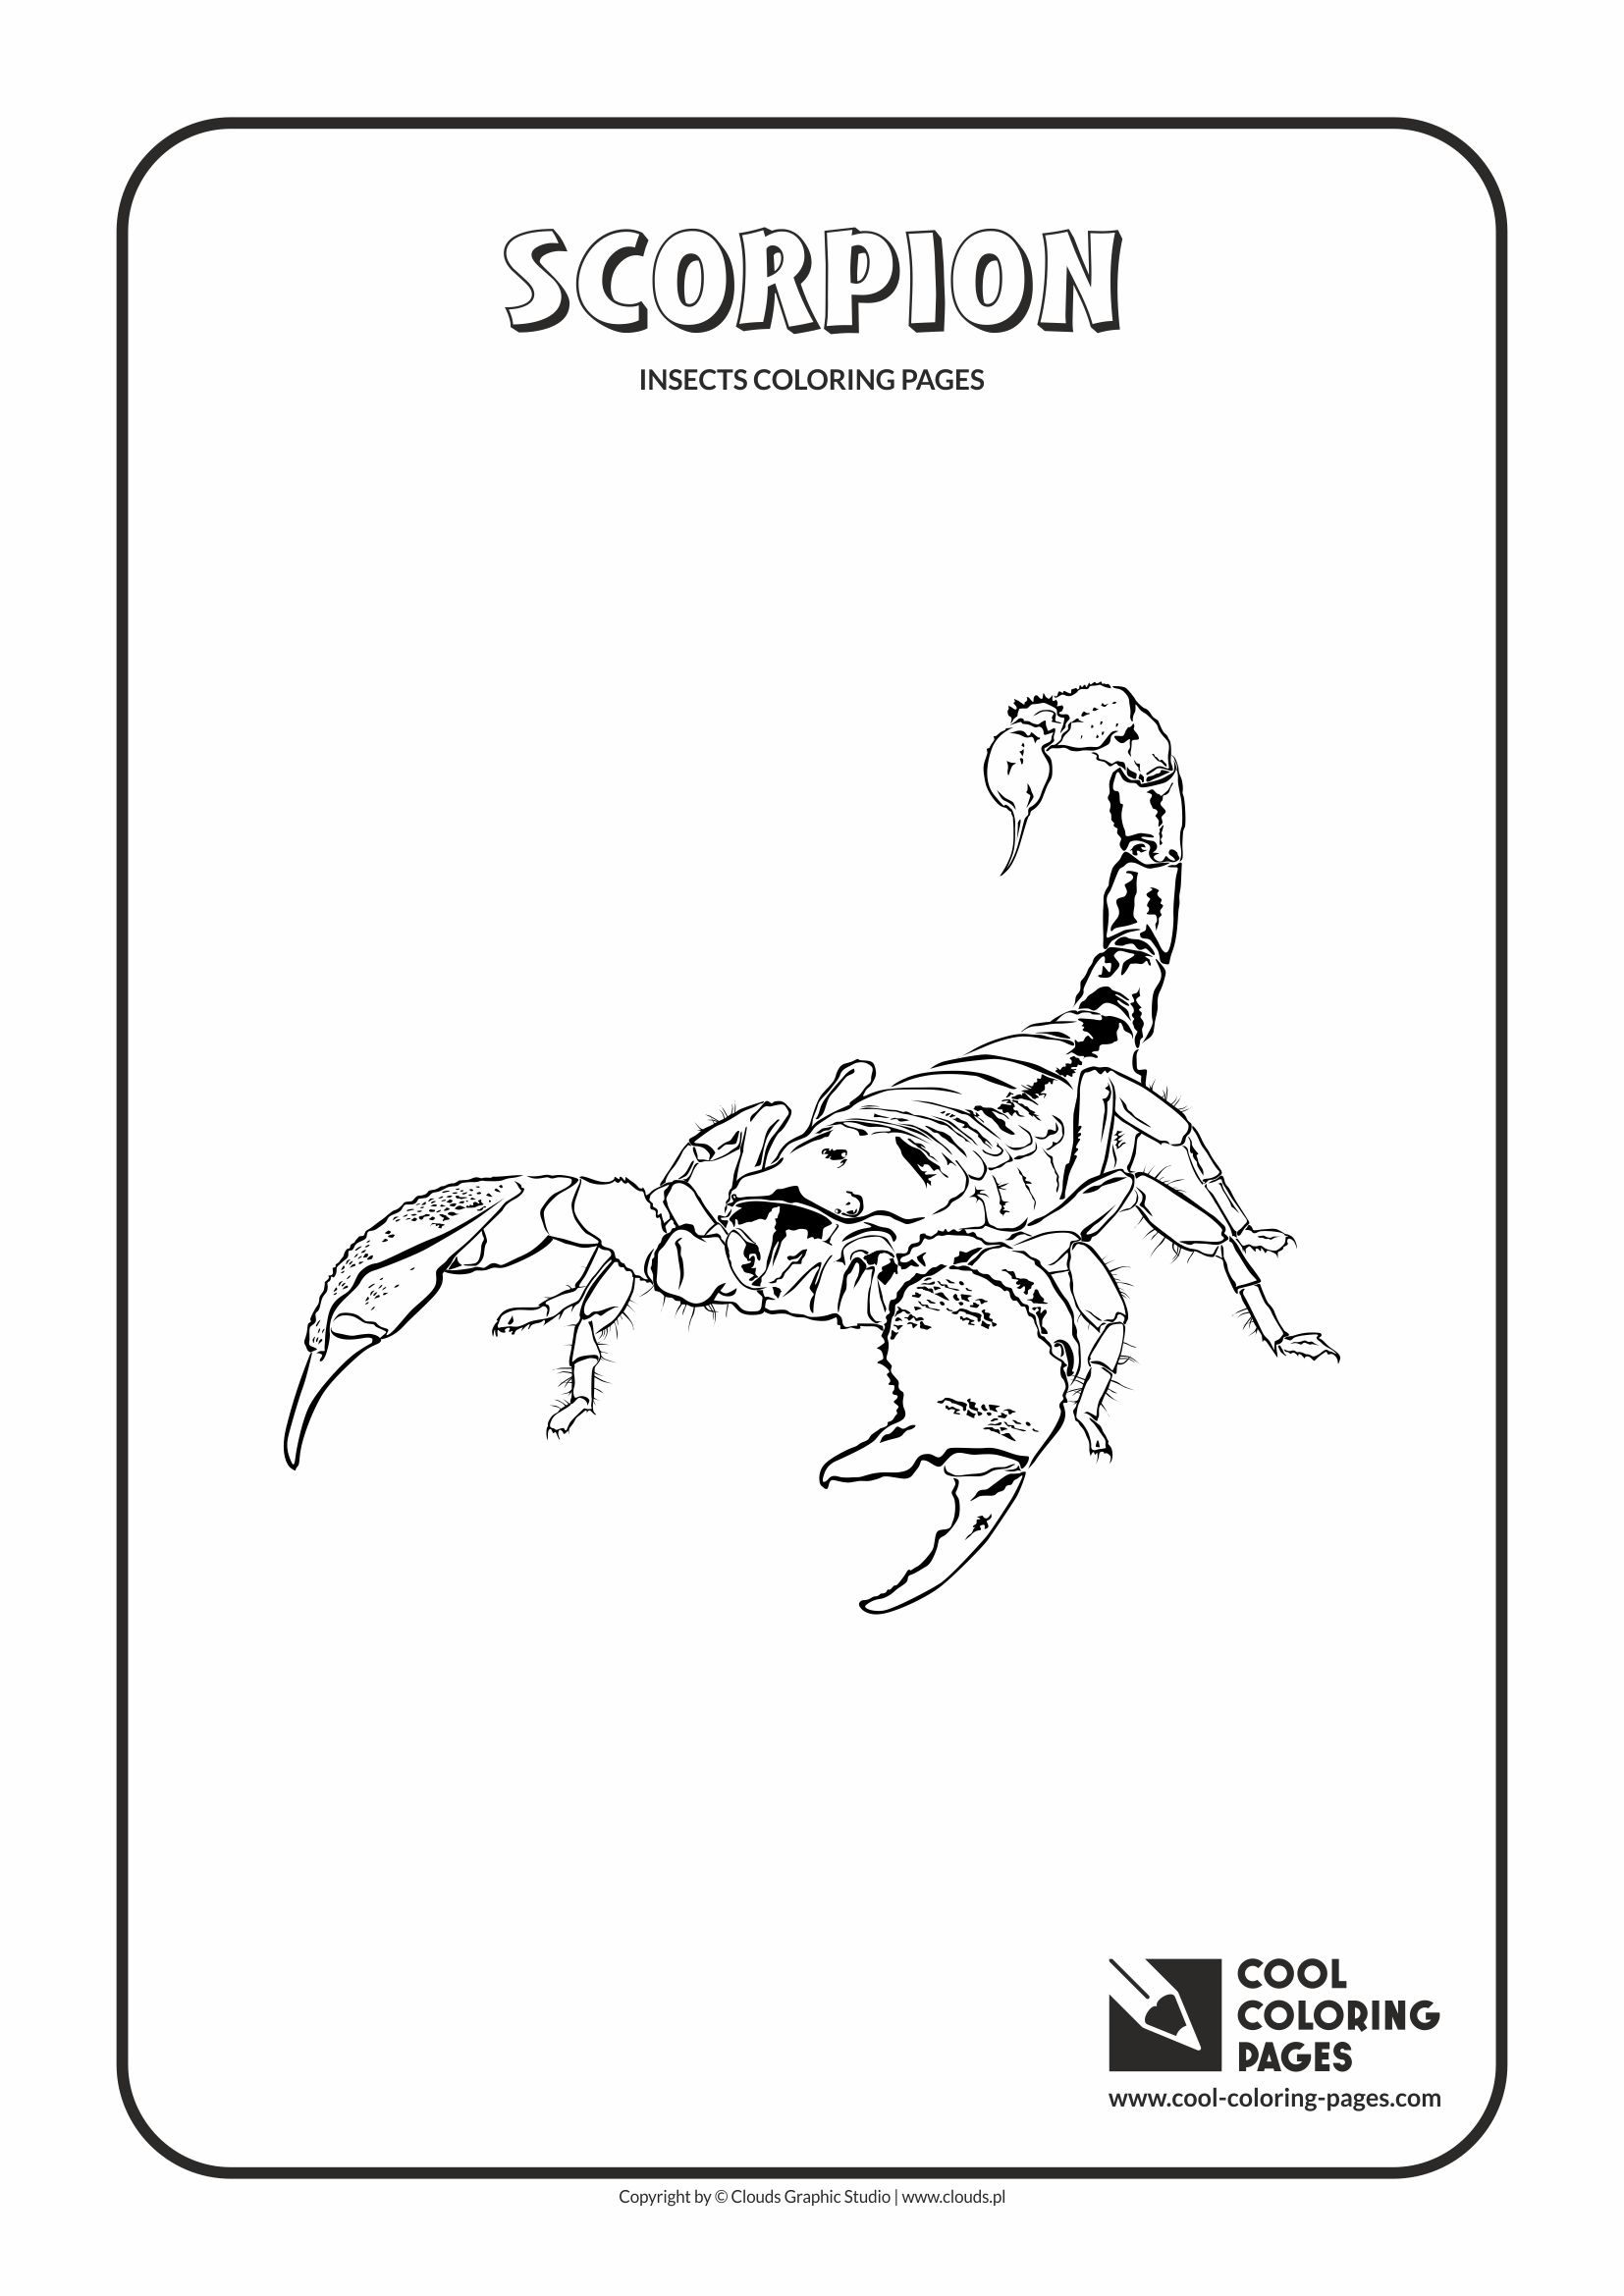 Cool Coloring Pages Scorpion Coloring Page Cool Coloring Pages